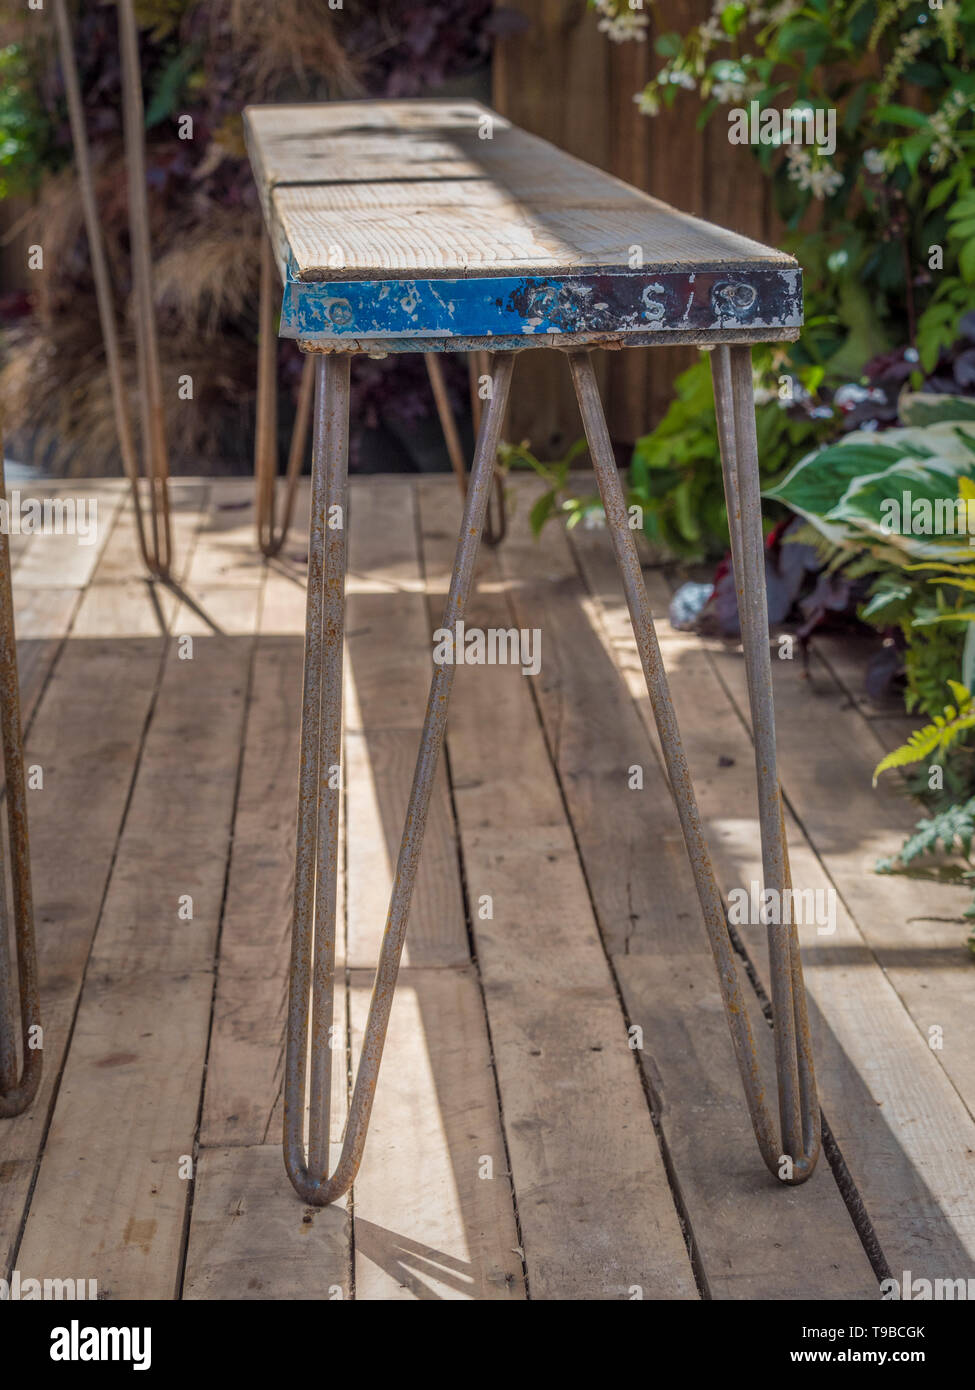 Scaffold plank bench with metal hairpin legs - Stock Image